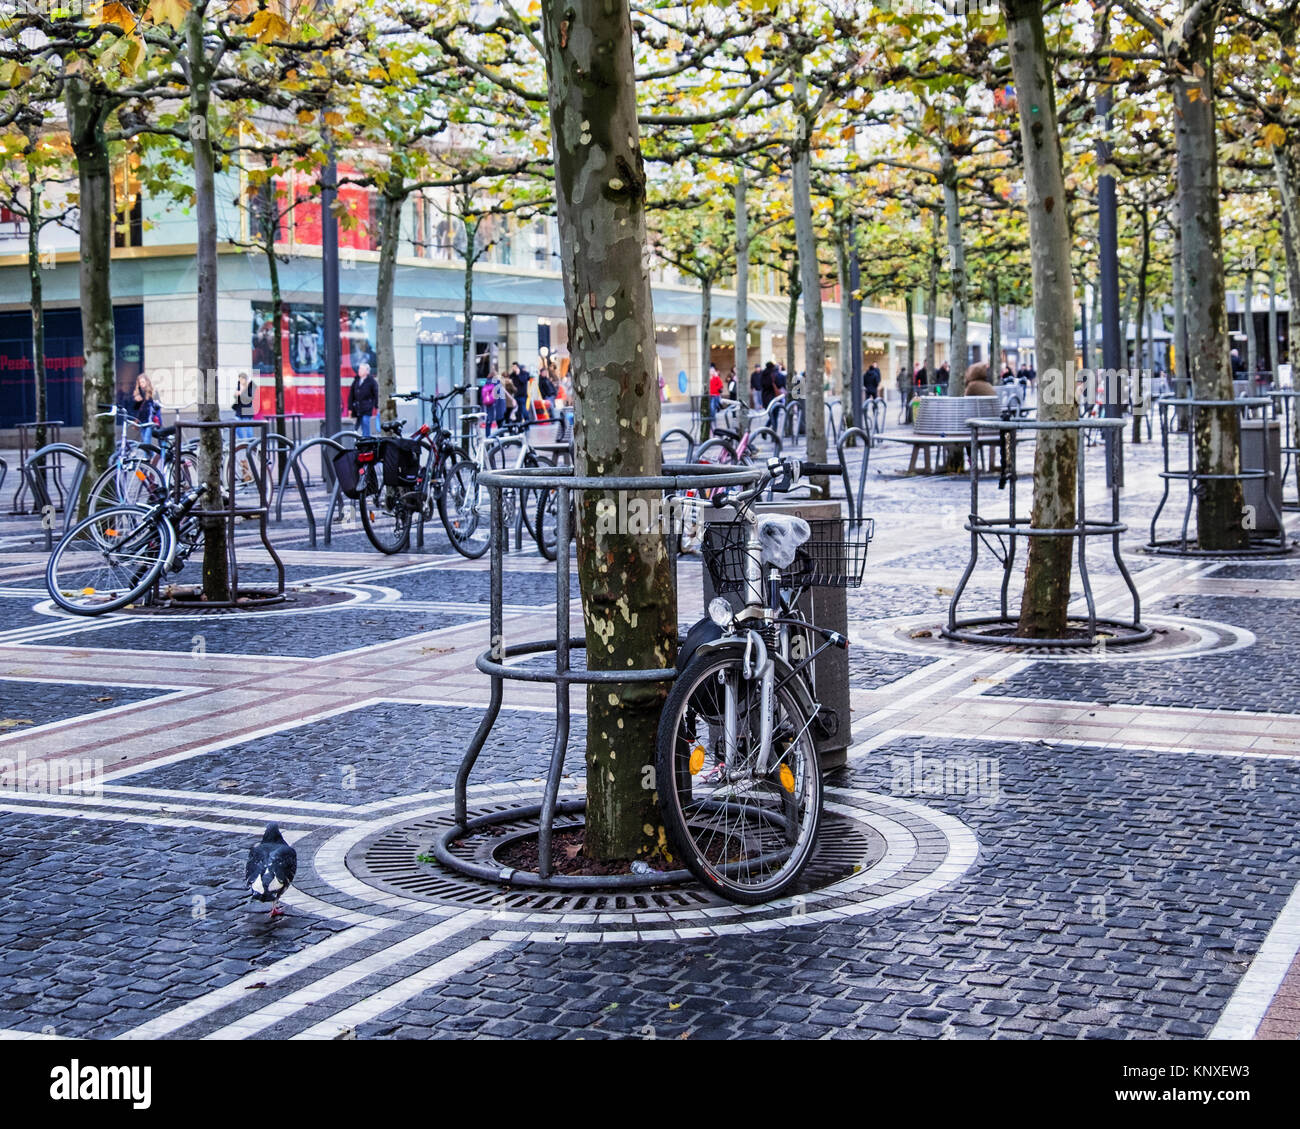 Outdoor Geschäft Frankfurt Shopping On Zeil Frankfurt High Resolution Stock Photography And Images - Alamy